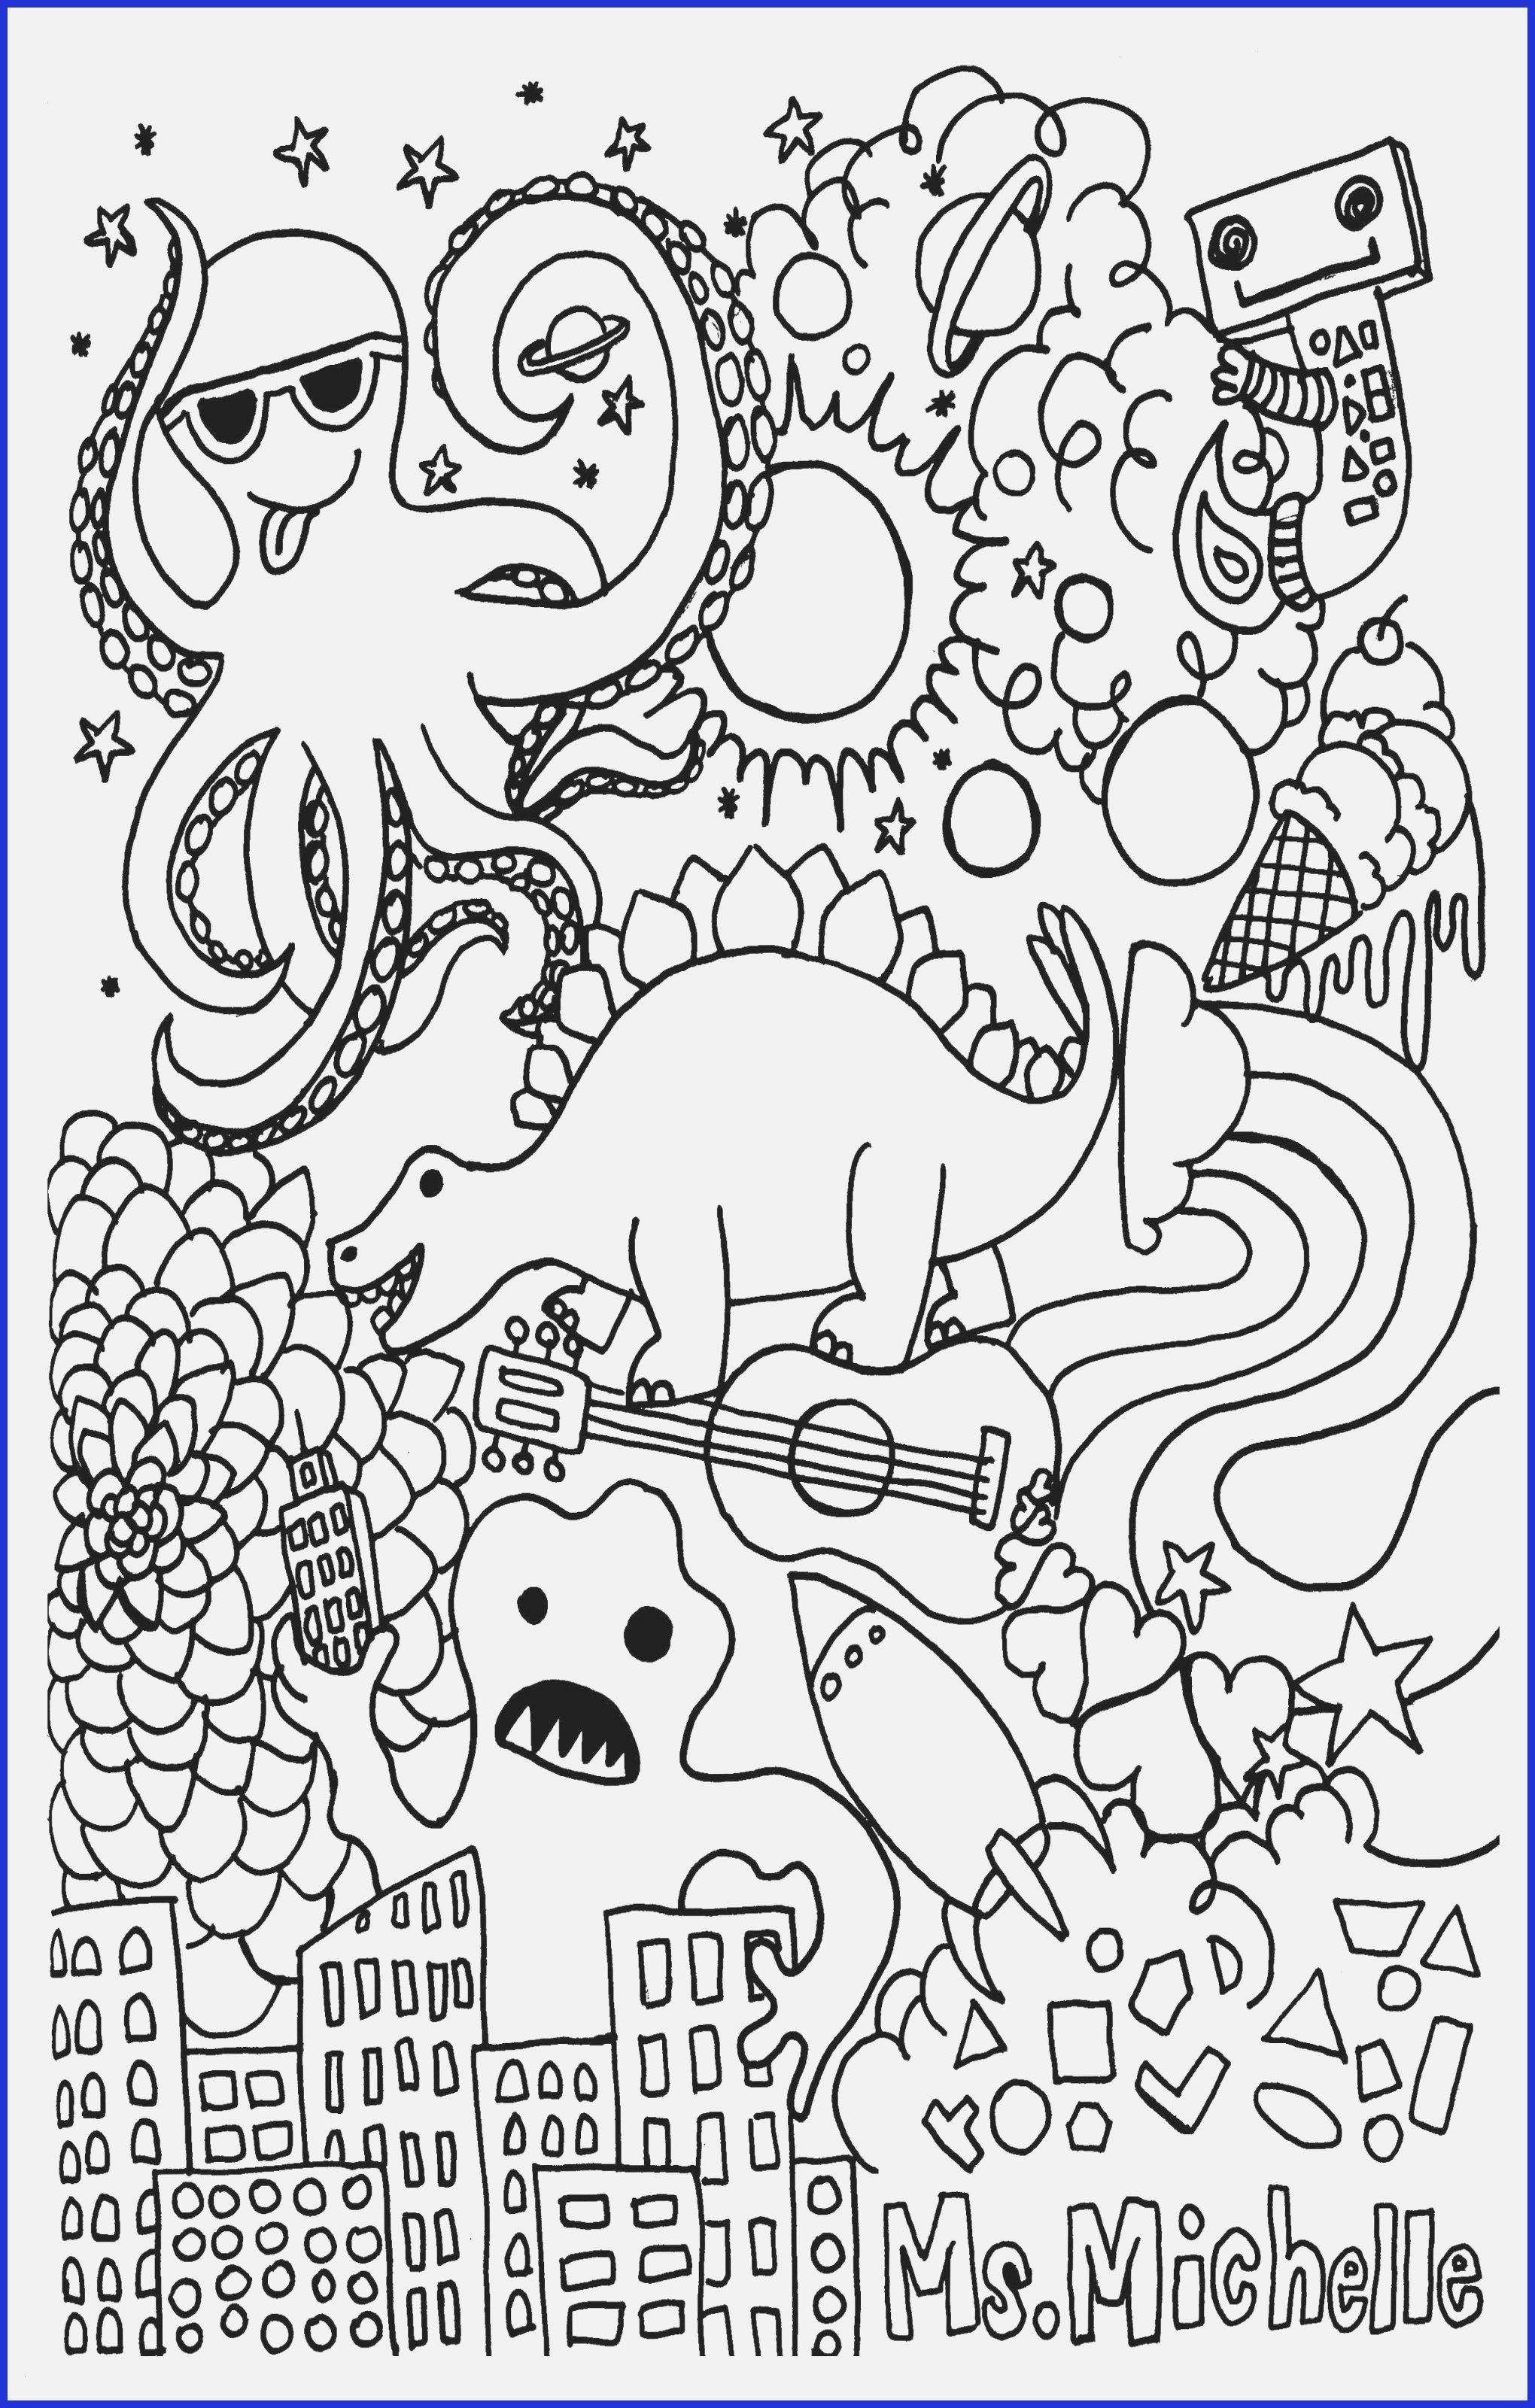 Make Your Own Coloring Book Inspirational 15 Fresh Coloring Book Artist Valentine Coloring Pages Coloring Pages Inspirational Alphabet Coloring Pages